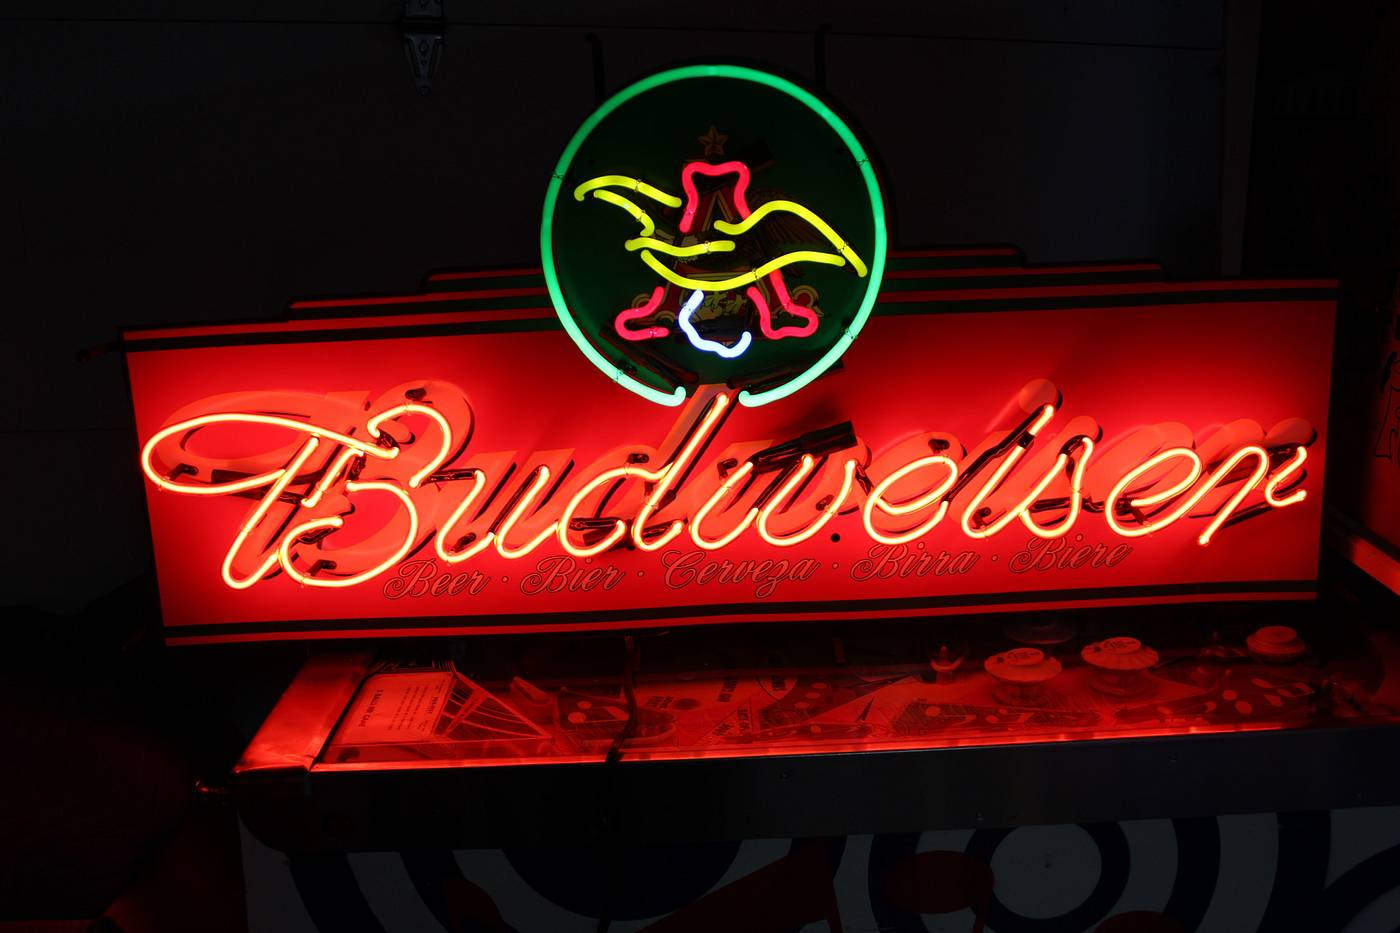 Man Cave Neon Signs For Sale : I have a big lot of neon signs for sale great man